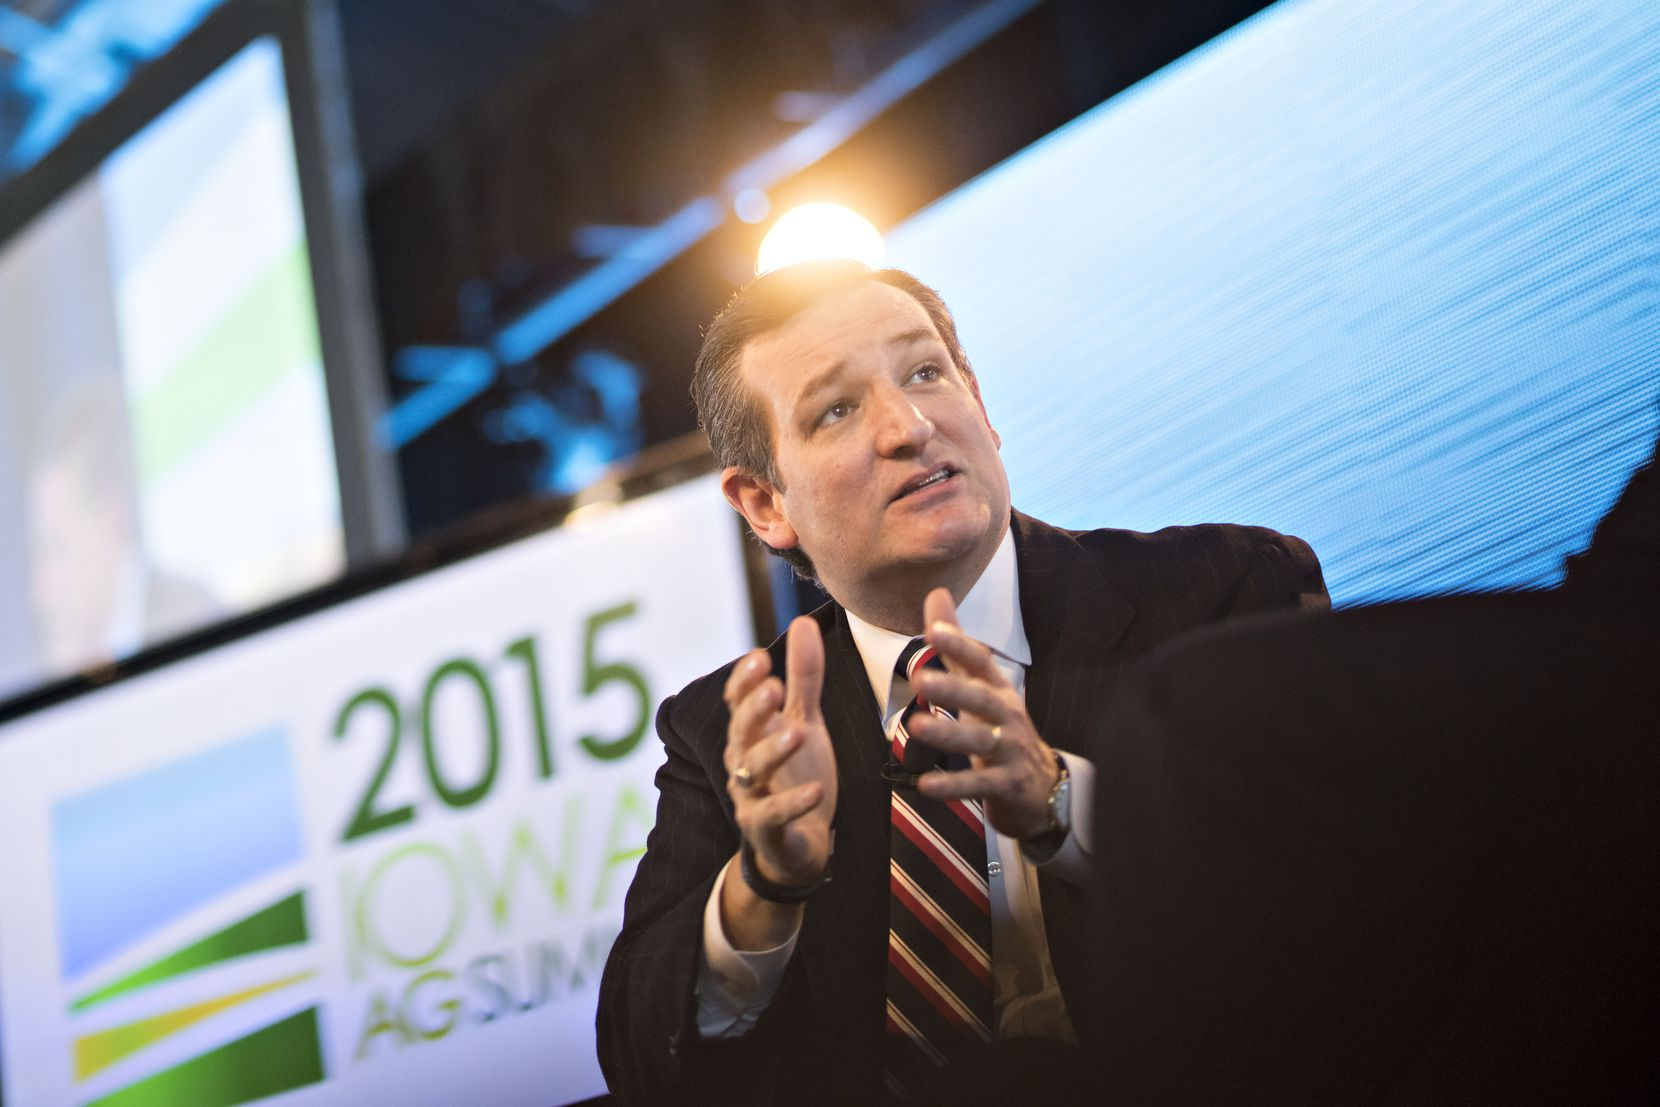 Senator Ted Cruz speaks at the Iowa Ag Summit at the Iowa State Fairgrounds in Des Moines on March 7, 2015. Cruz used the platform to defend his push to end a federal mandate to blend ethanol — much of it from corn — into gasoline and diesel.